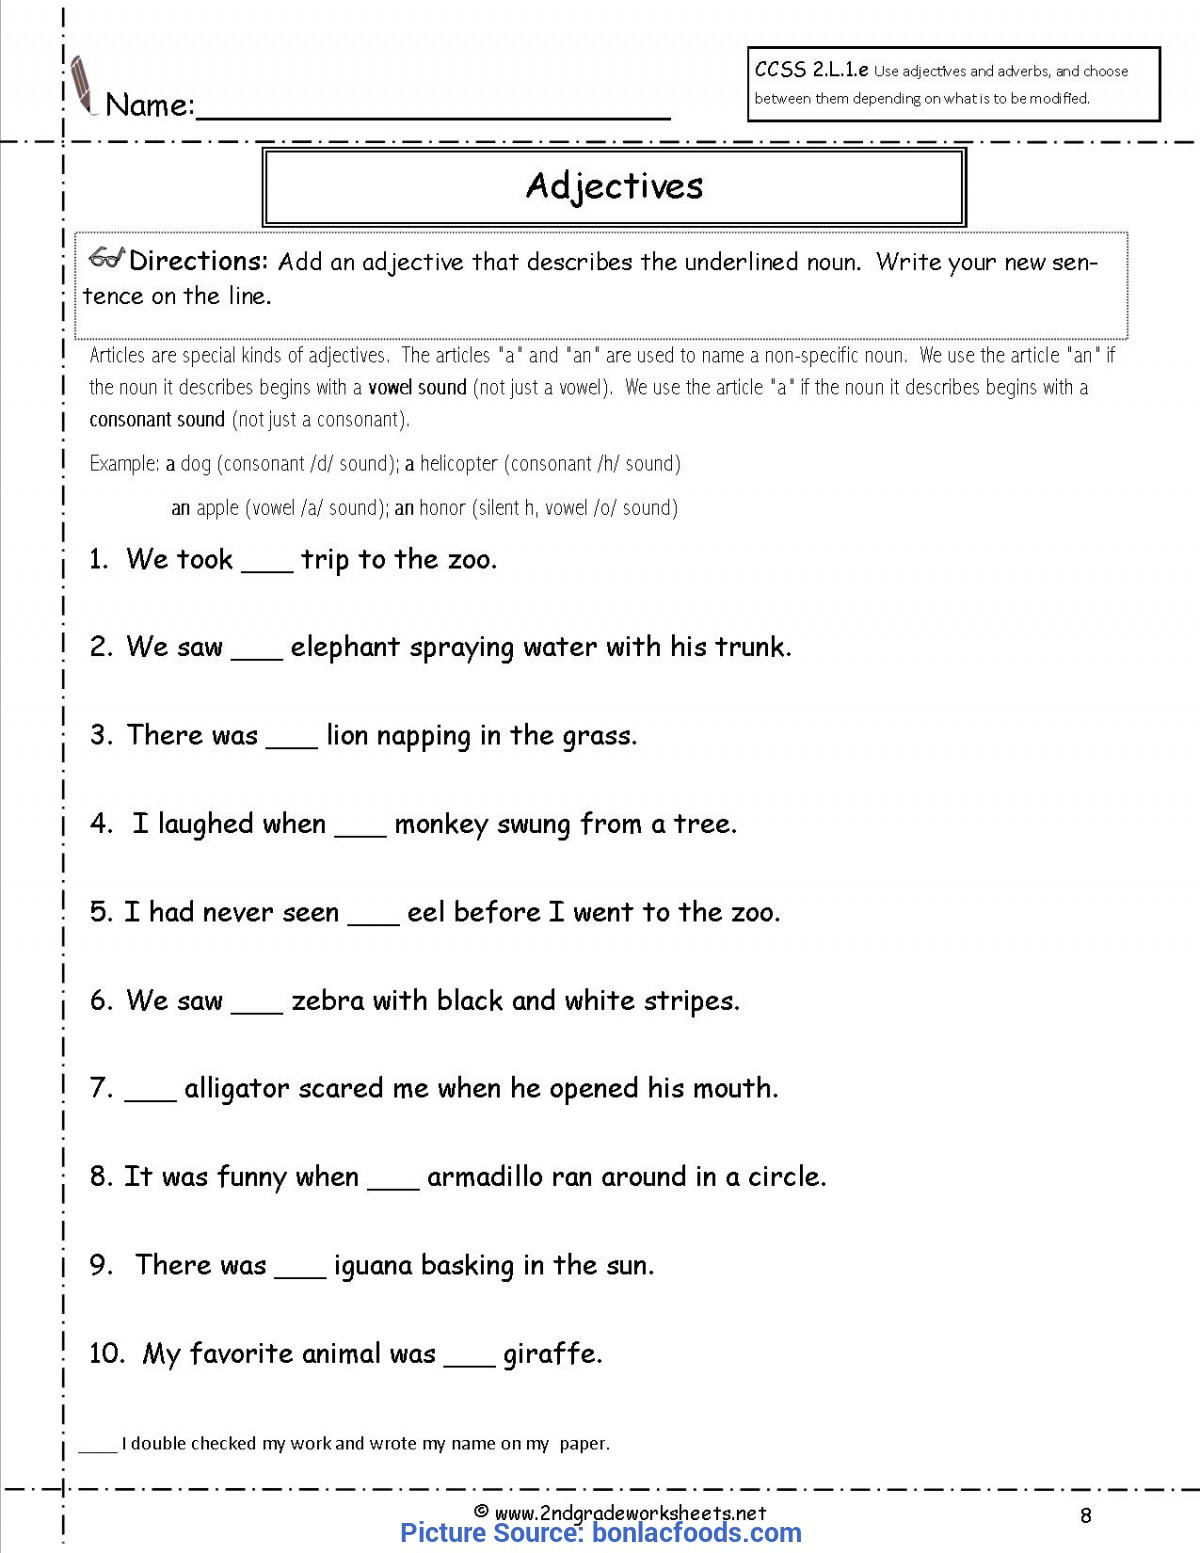 Adjectives Worksheet 2nd Grade Valuable 2nd Grade Lesson Plans Adjectives Worksheets for